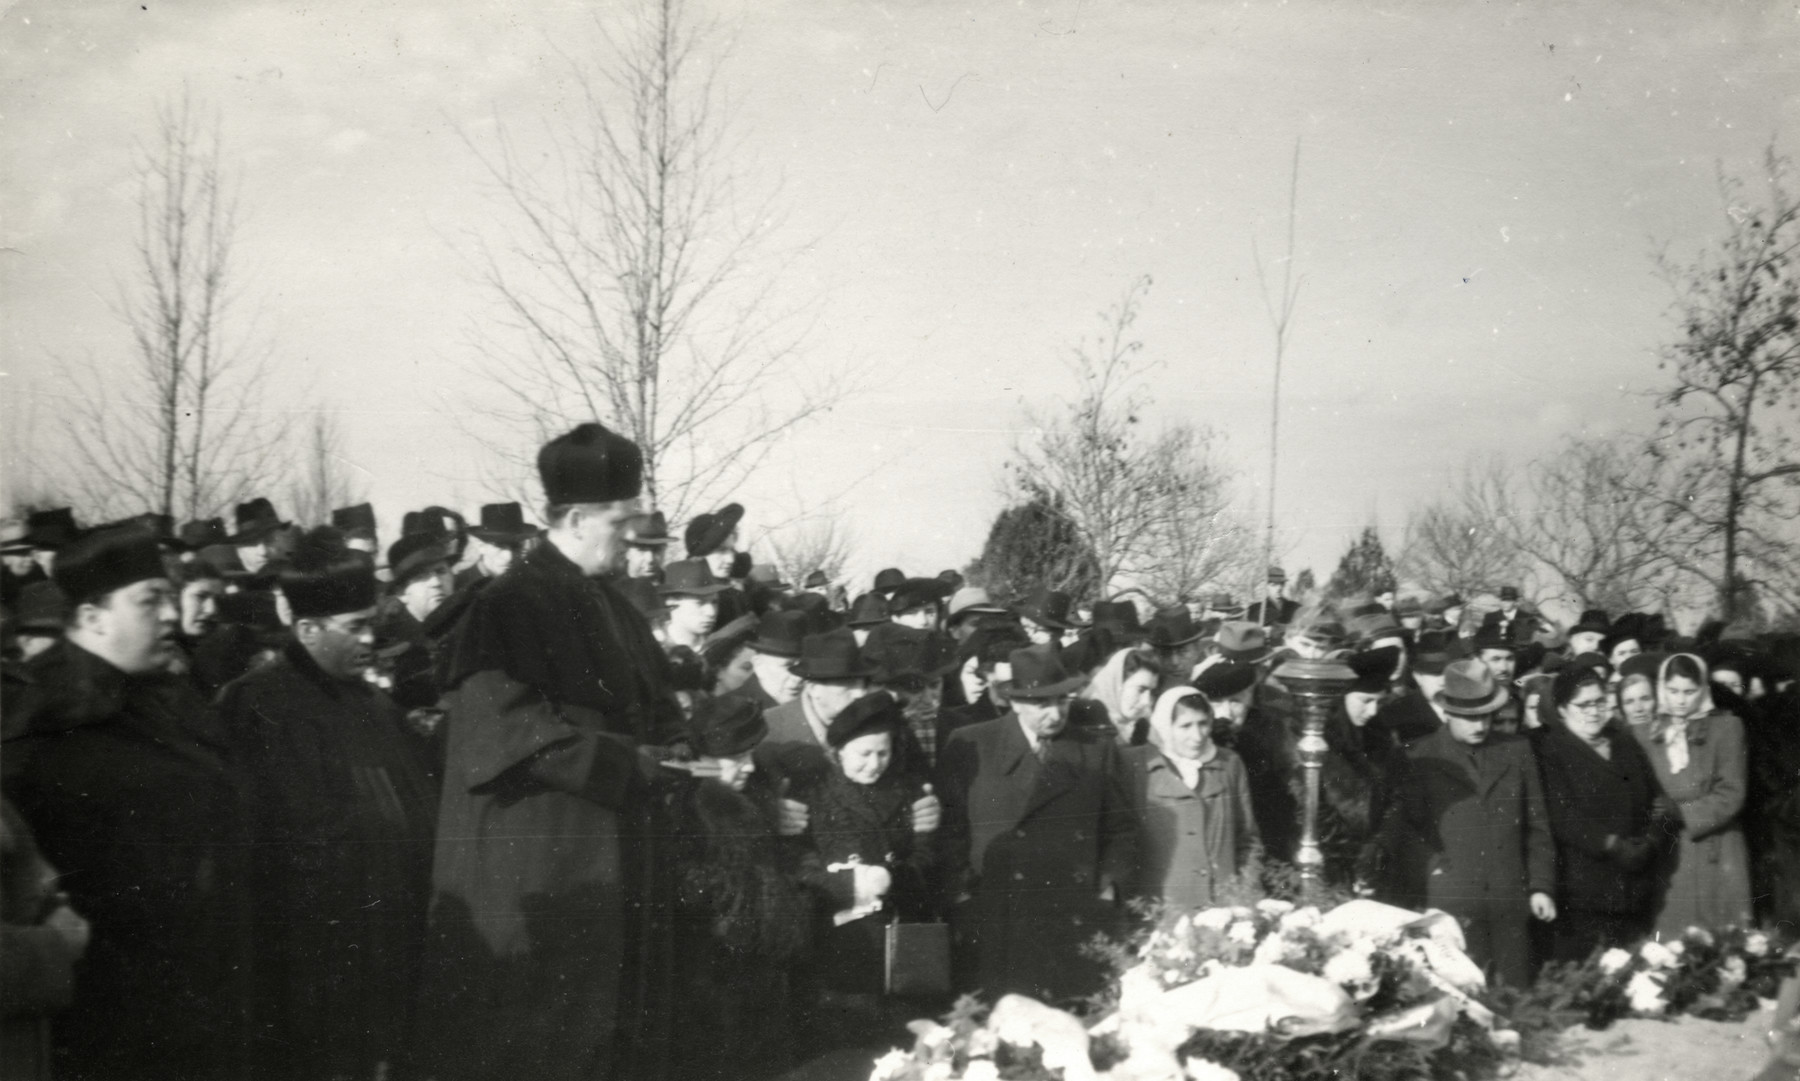 Rabbi Jeno Frenkel leads a memorial service following the exhumation and reburial of Jewish Holocaust victims.  Their bodies were exhumed in Strasshof\ and reburied in Szeged, Hungary.  Among those attending is Pal Gyulai, a survivor  who worked with Rabbi Frankel on this project to return victims remains from Strasshoff, Austria.